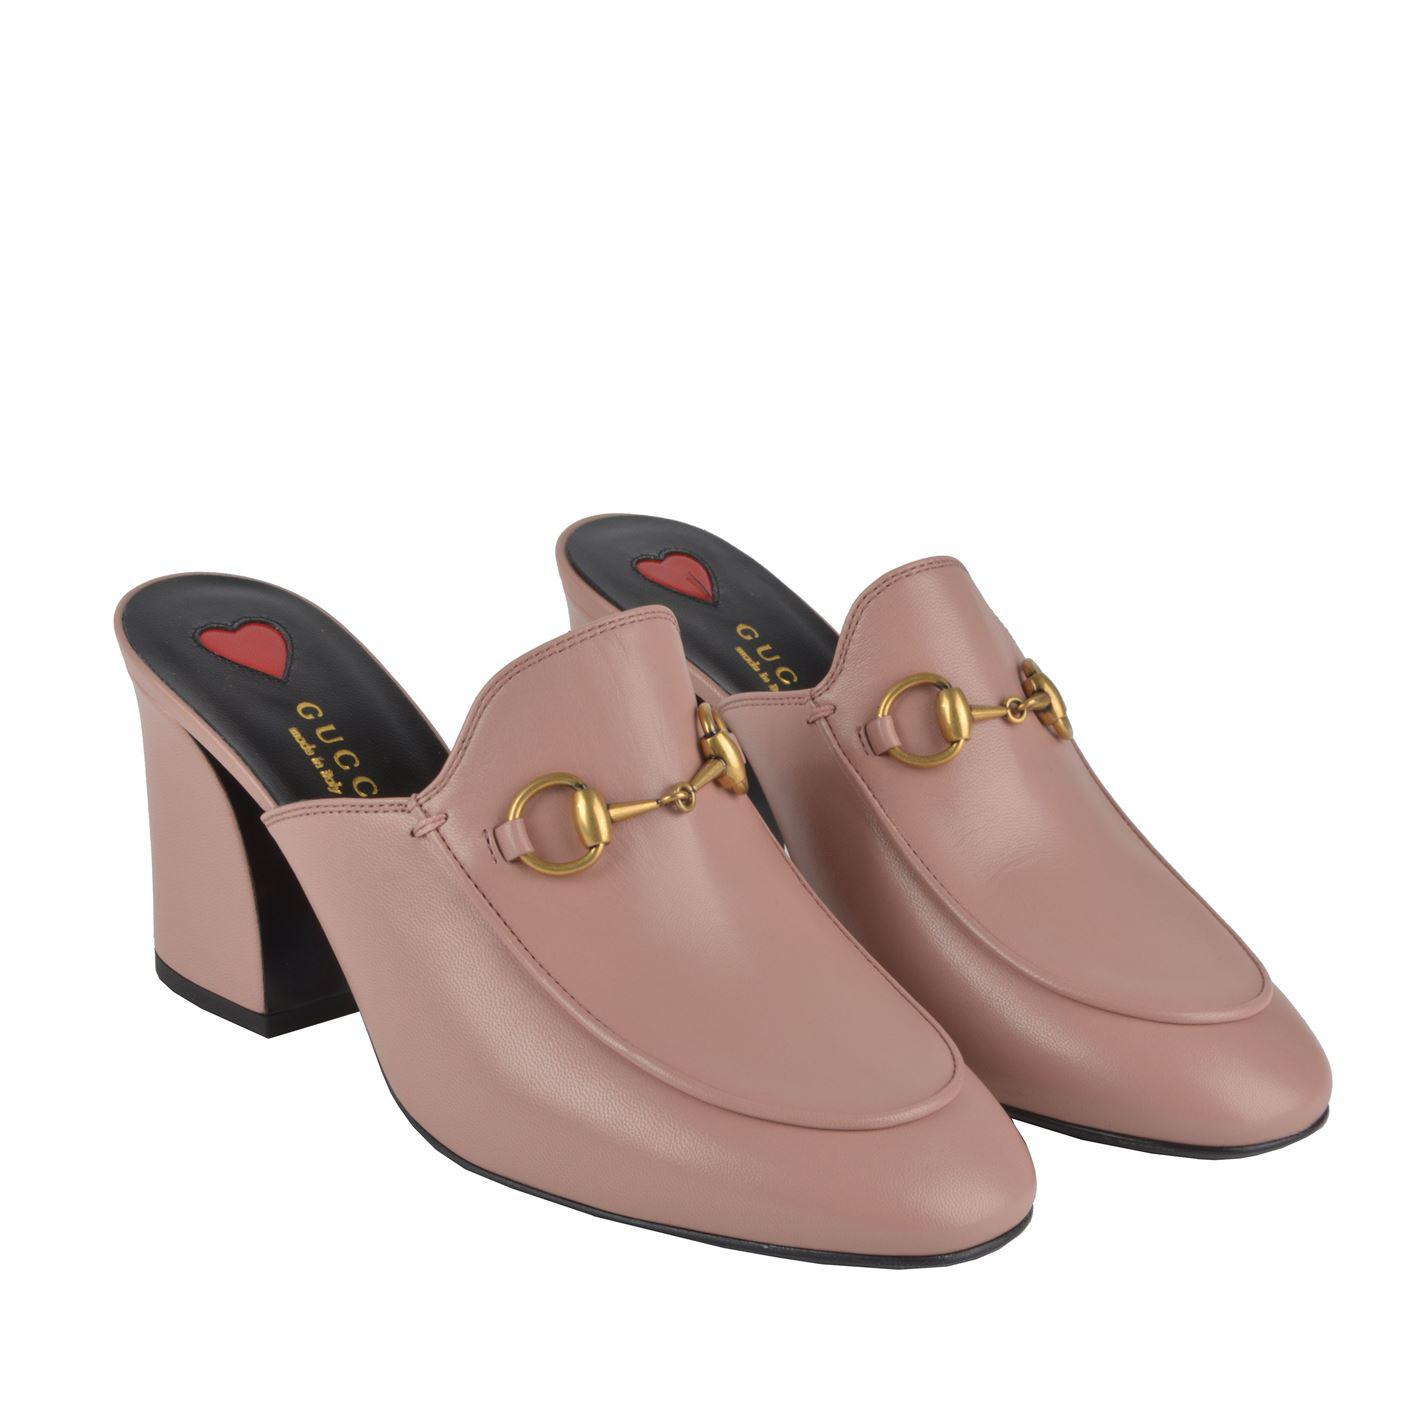 3f06d260e Gucci Princetown Heeled Mules - Lyst